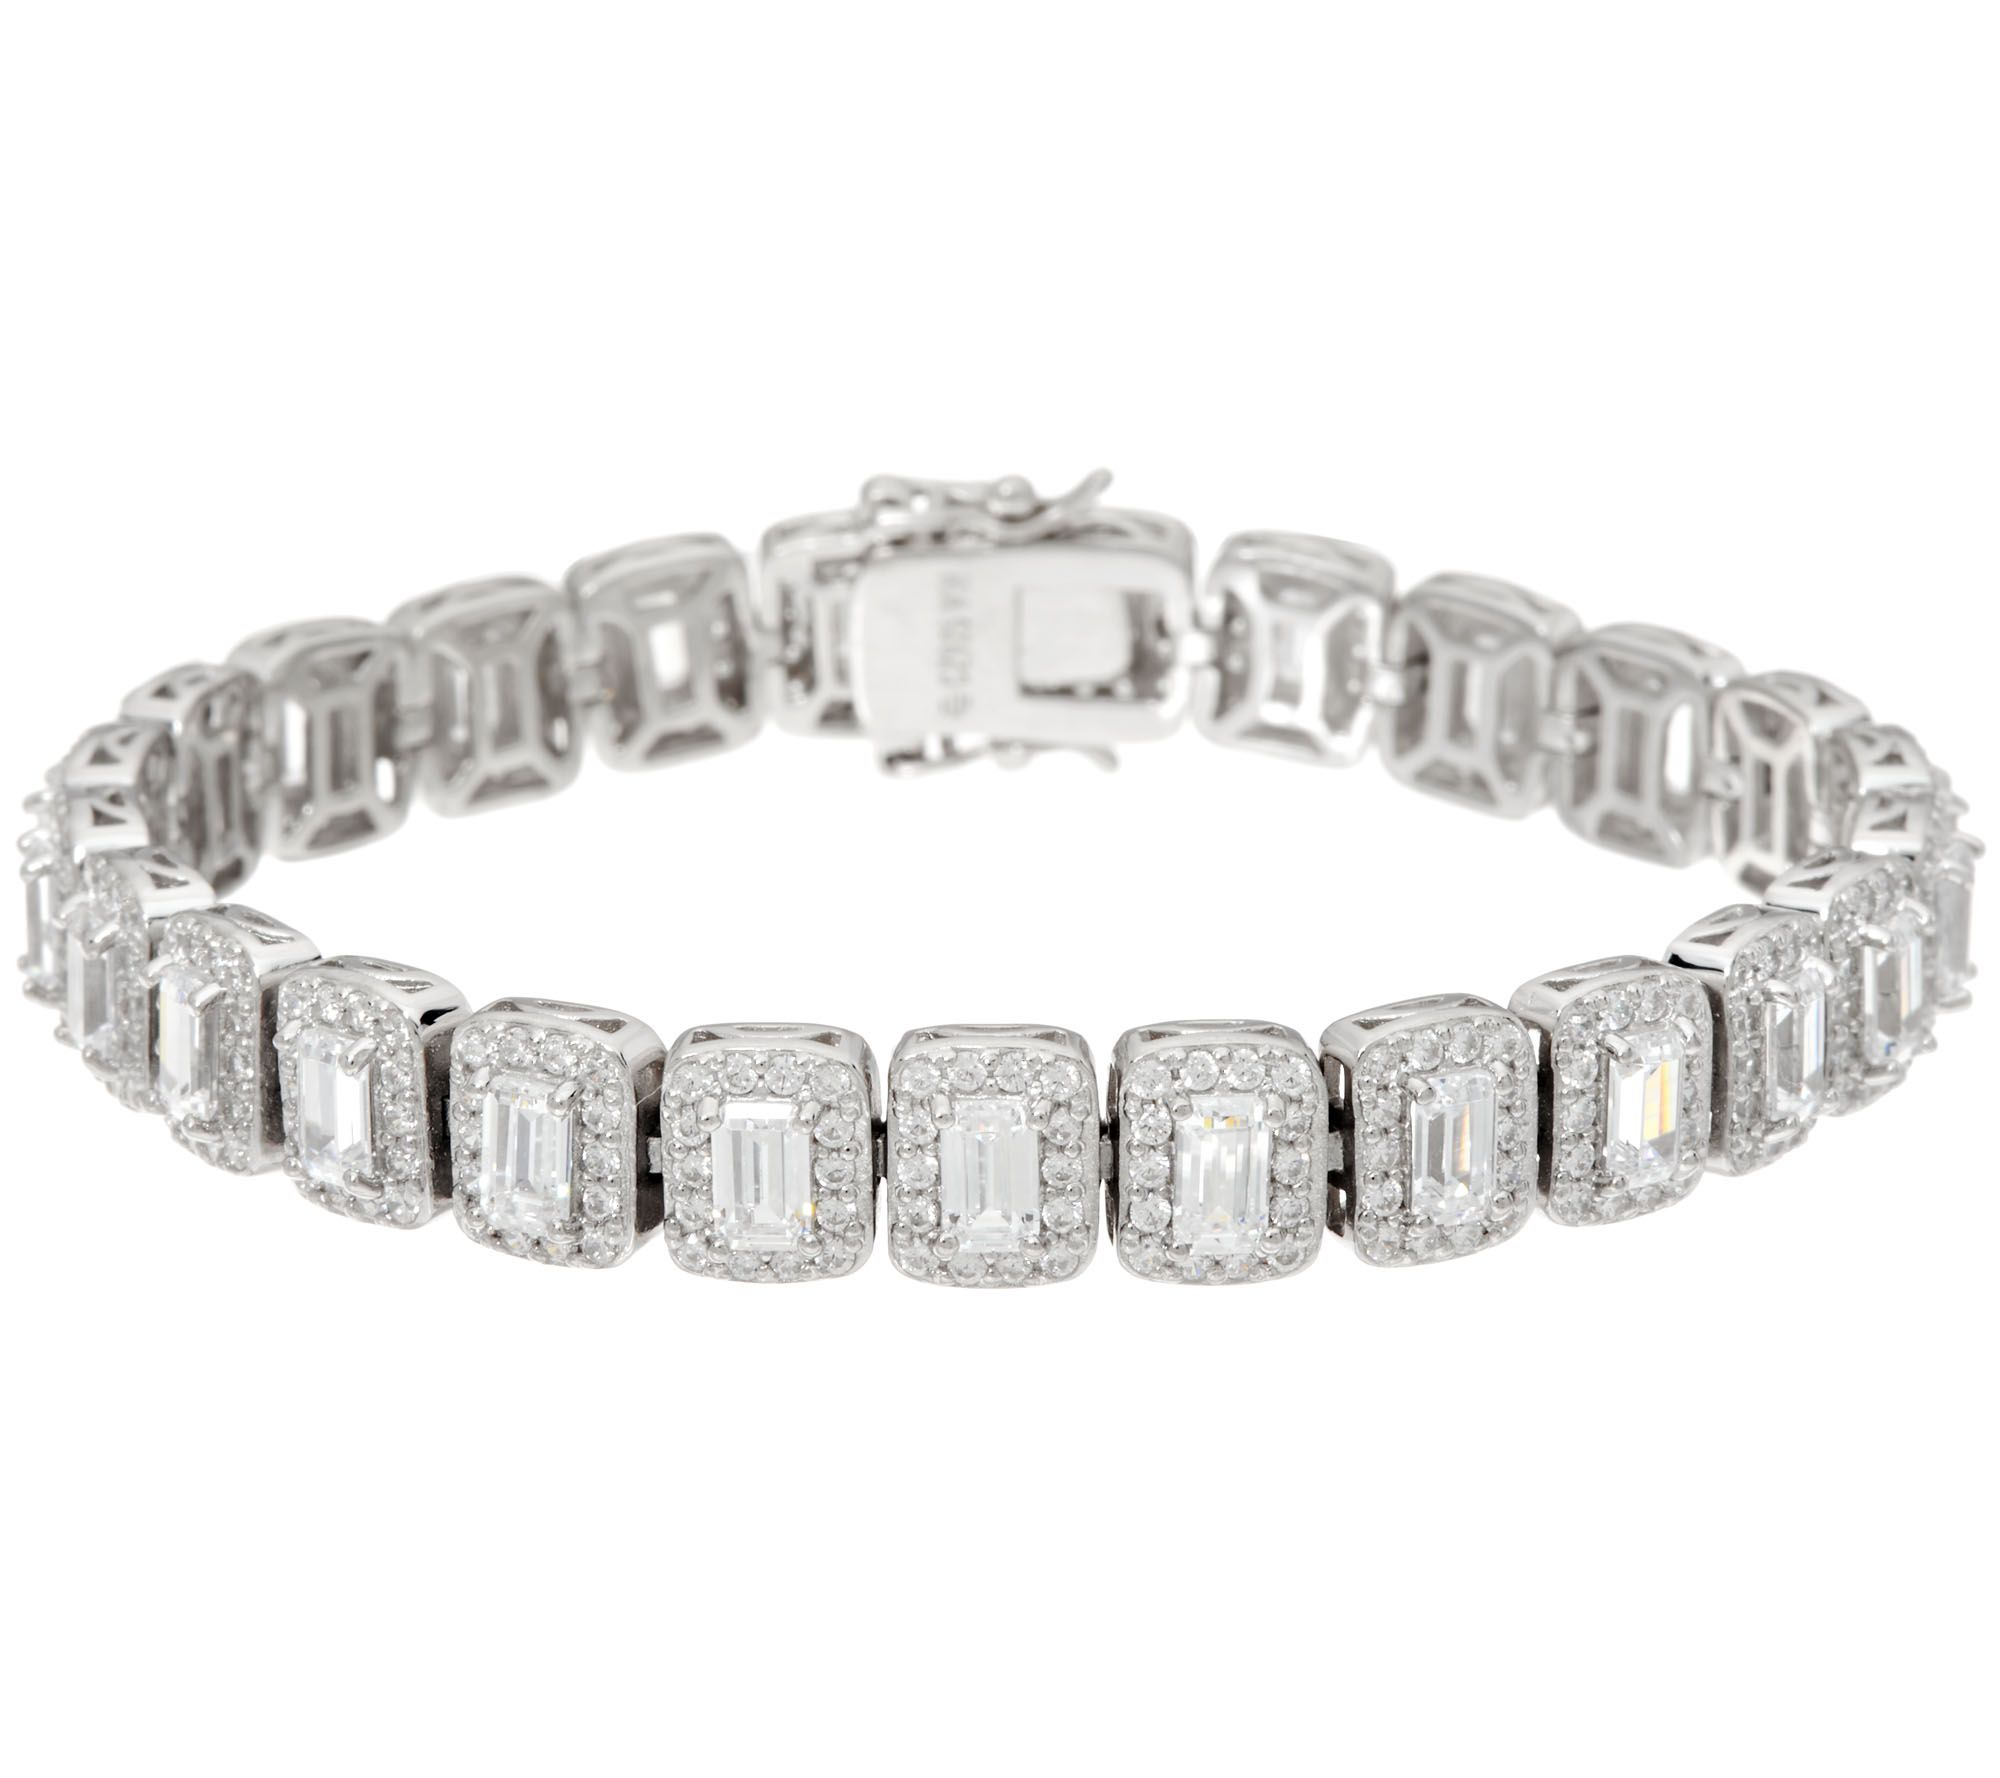 jewelry bracelets diamonique emerald cut halo tennis bracelet, sterling - j334212 ukpilvg